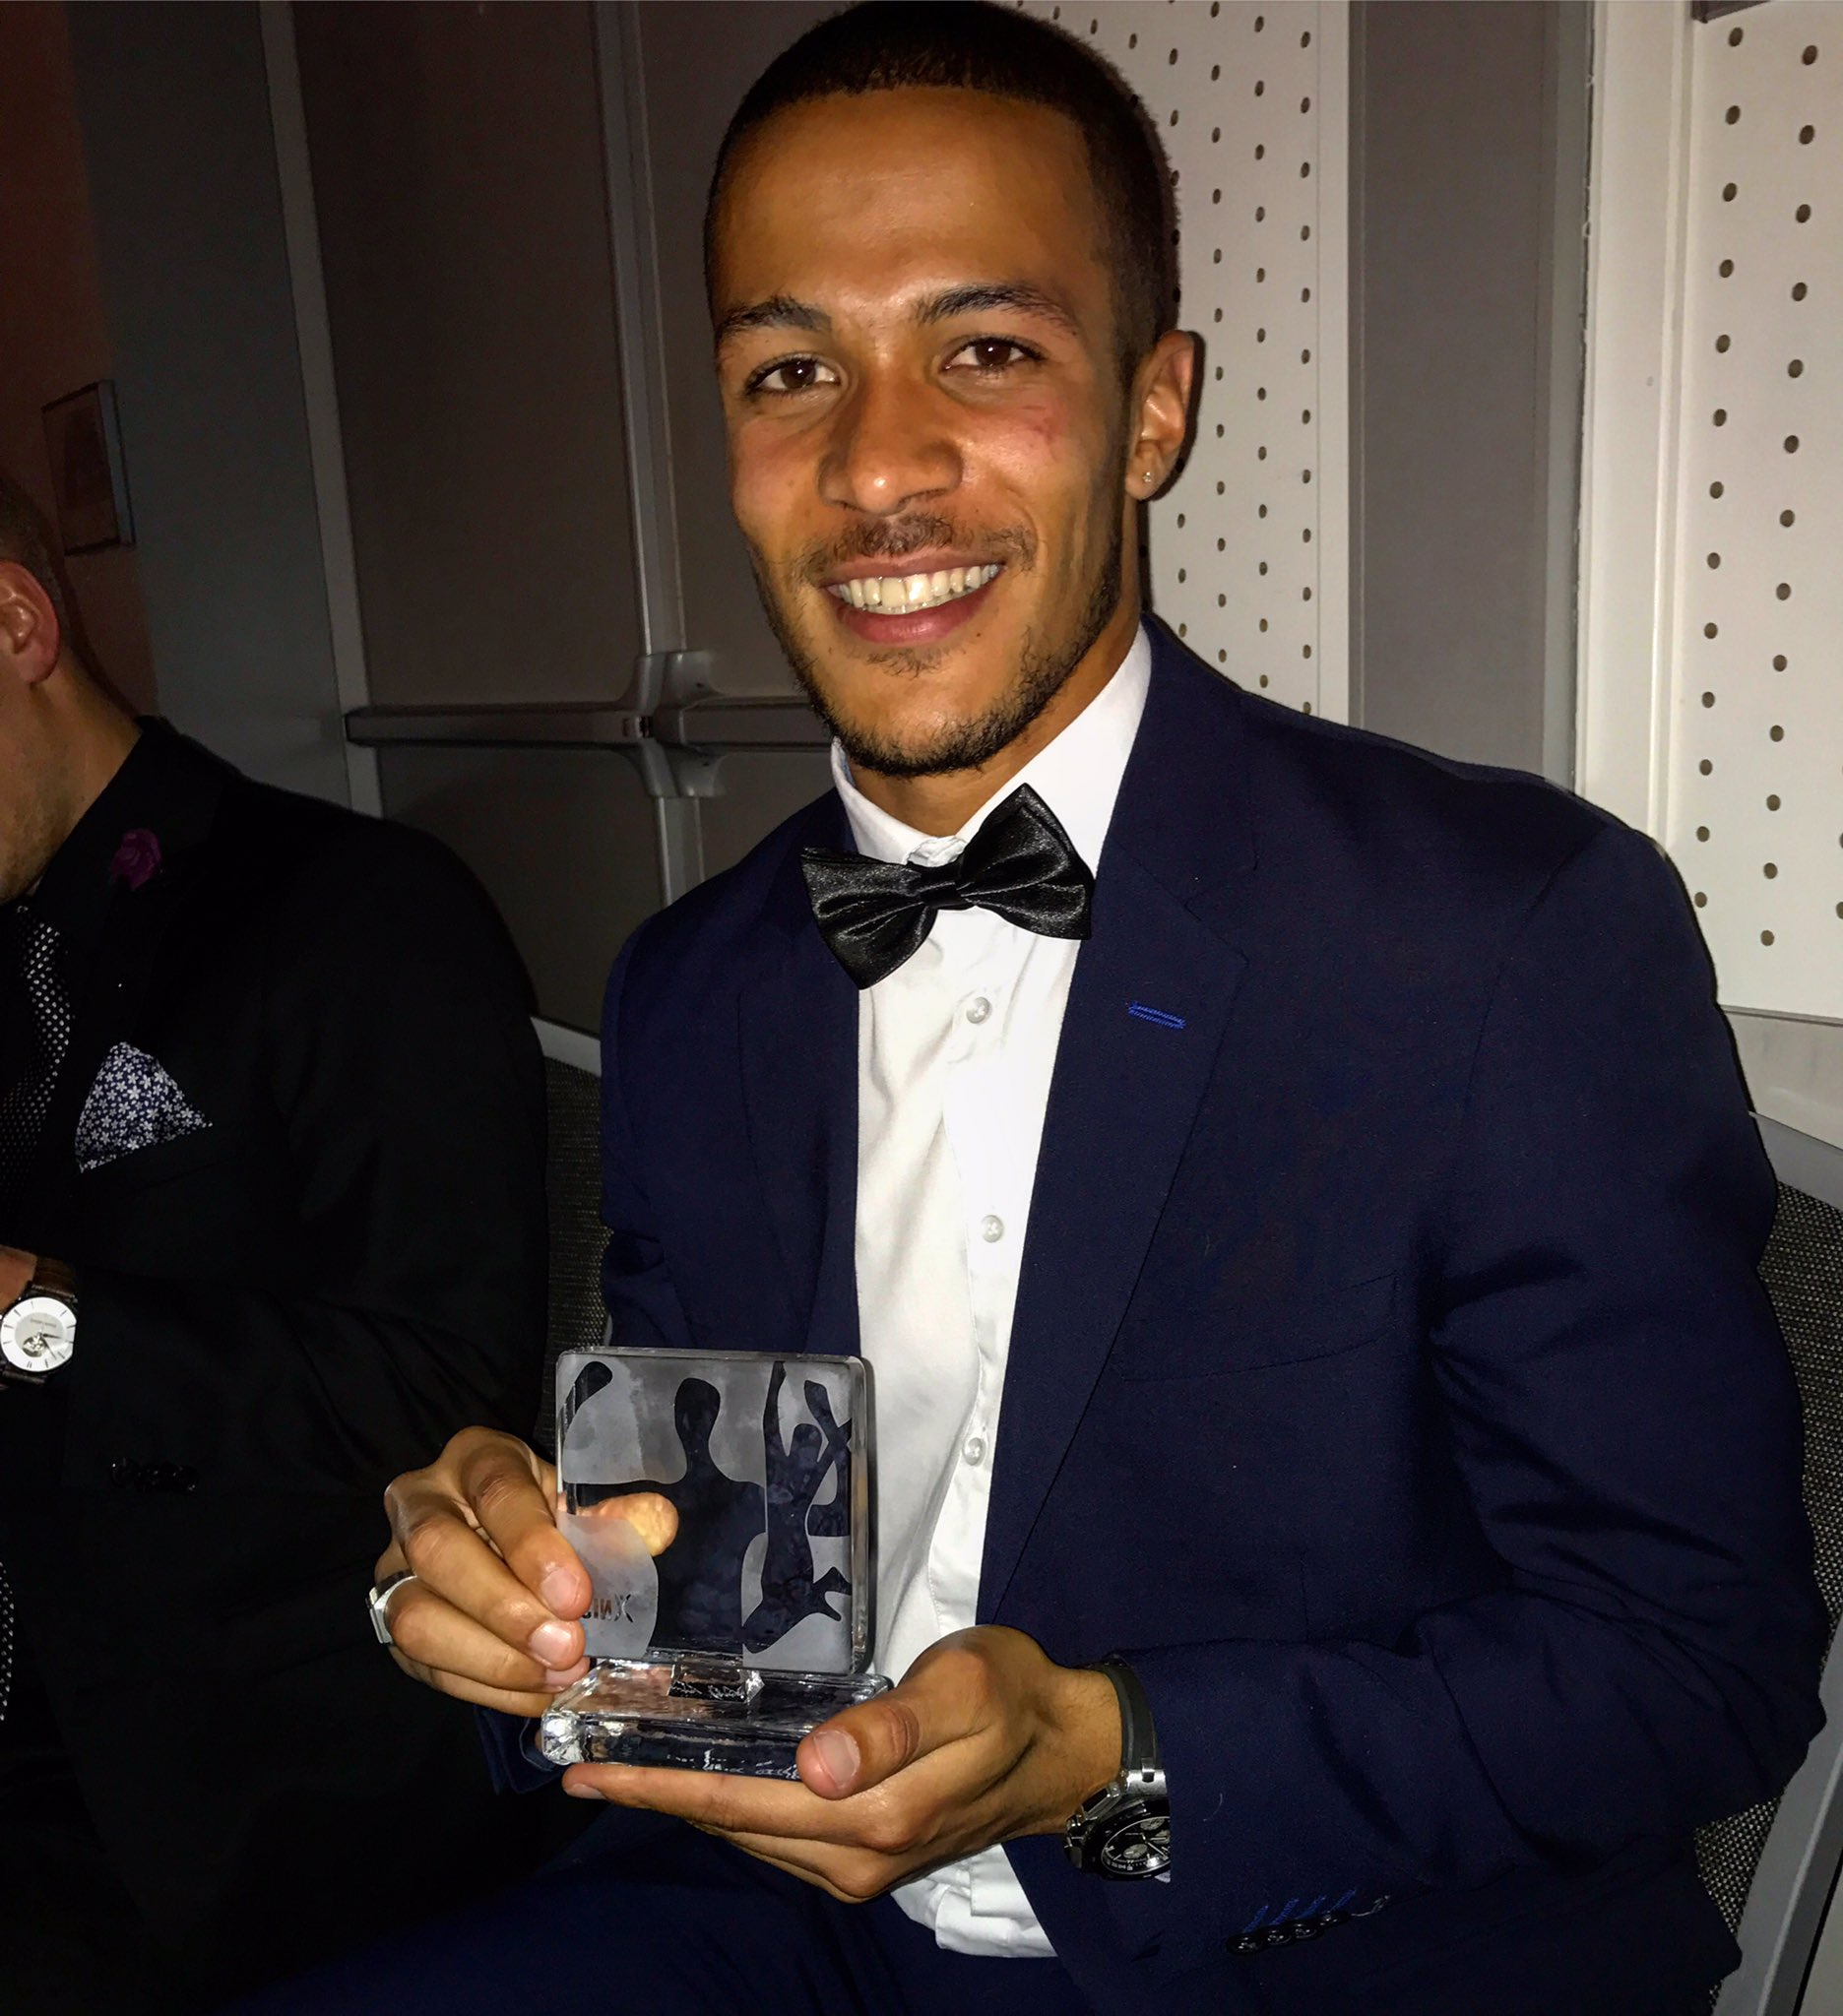 Troost-Ekong Celebrates Norway Award, Team Of The Year Selection